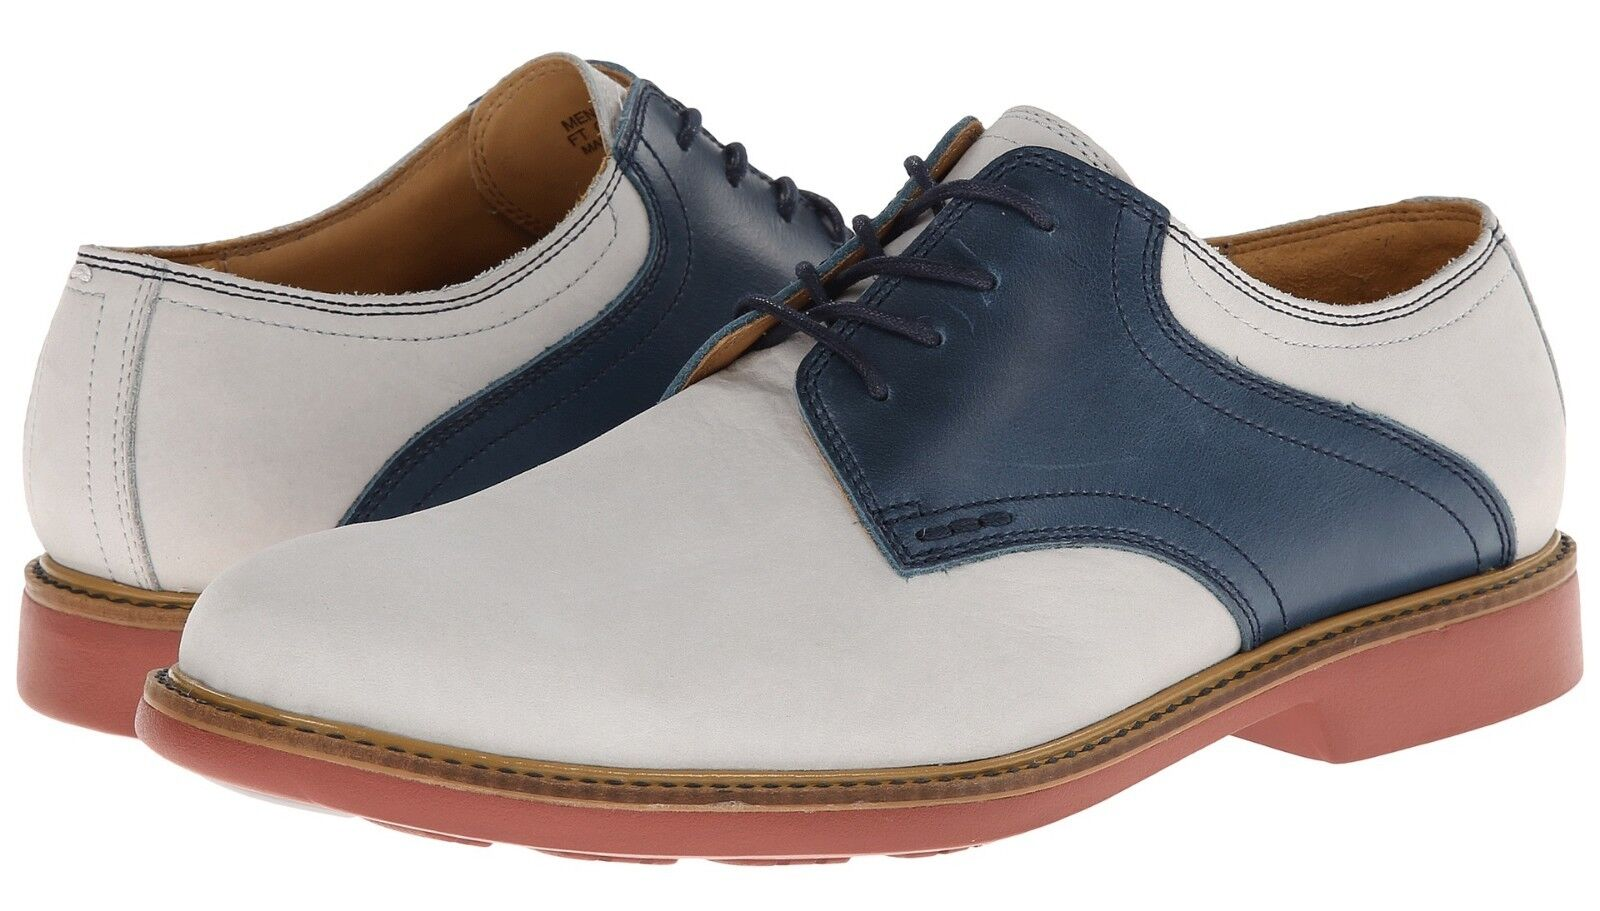 New  198 Cole Haan Great Jones Saddle Nubuck Pelle Oxford Lace-Up Alloy 8